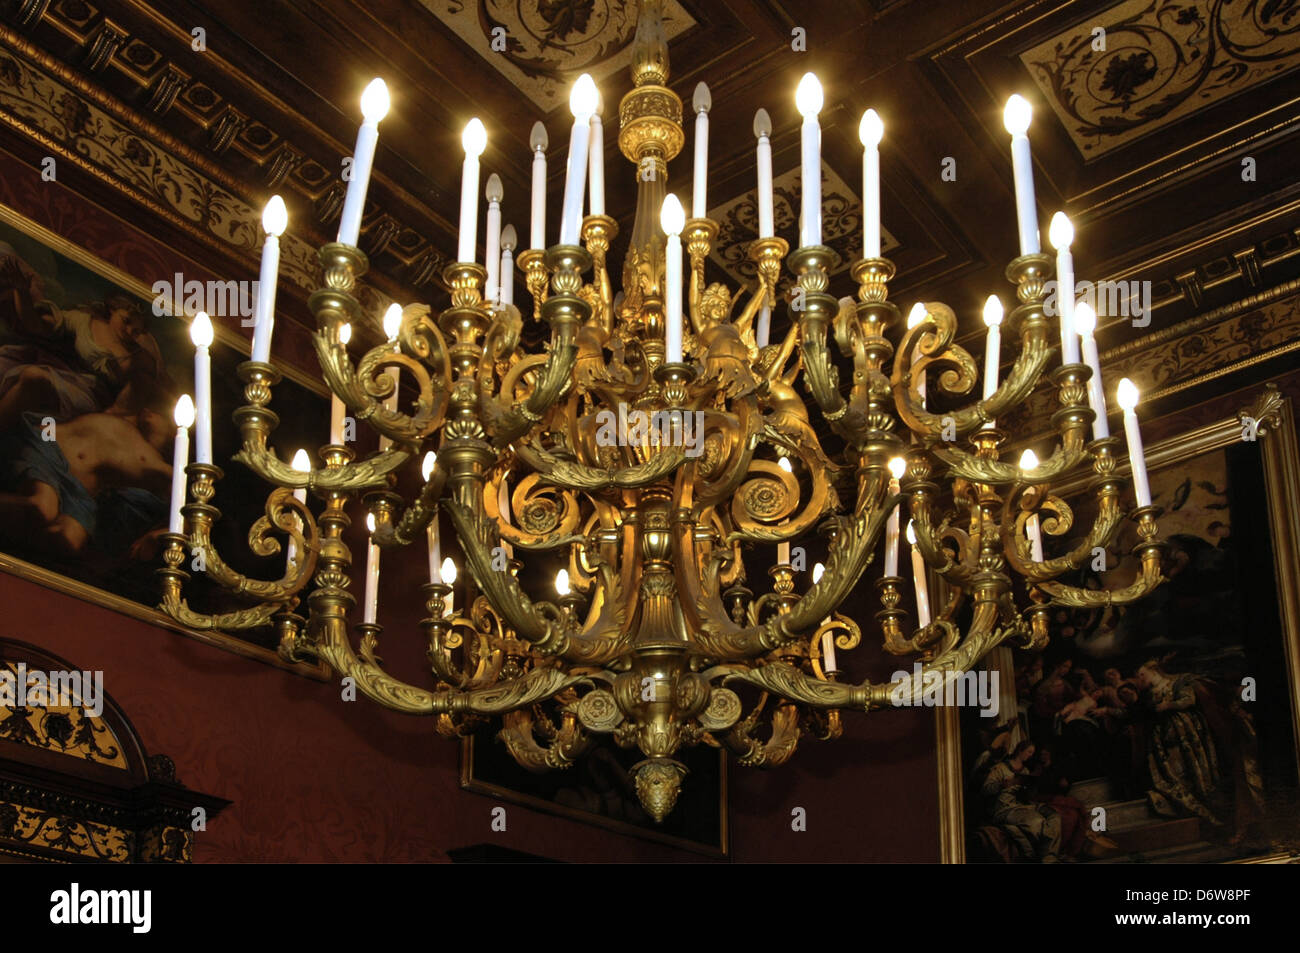 An antique chandelier in Palazzo Parisio sometimes known as Palazzo  Scicluna and officially Palazzo Parisio and Gardens, a palace in Naxxar,  Malta - An Antique Chandelier In Palazzo Parisio Sometimes Known As